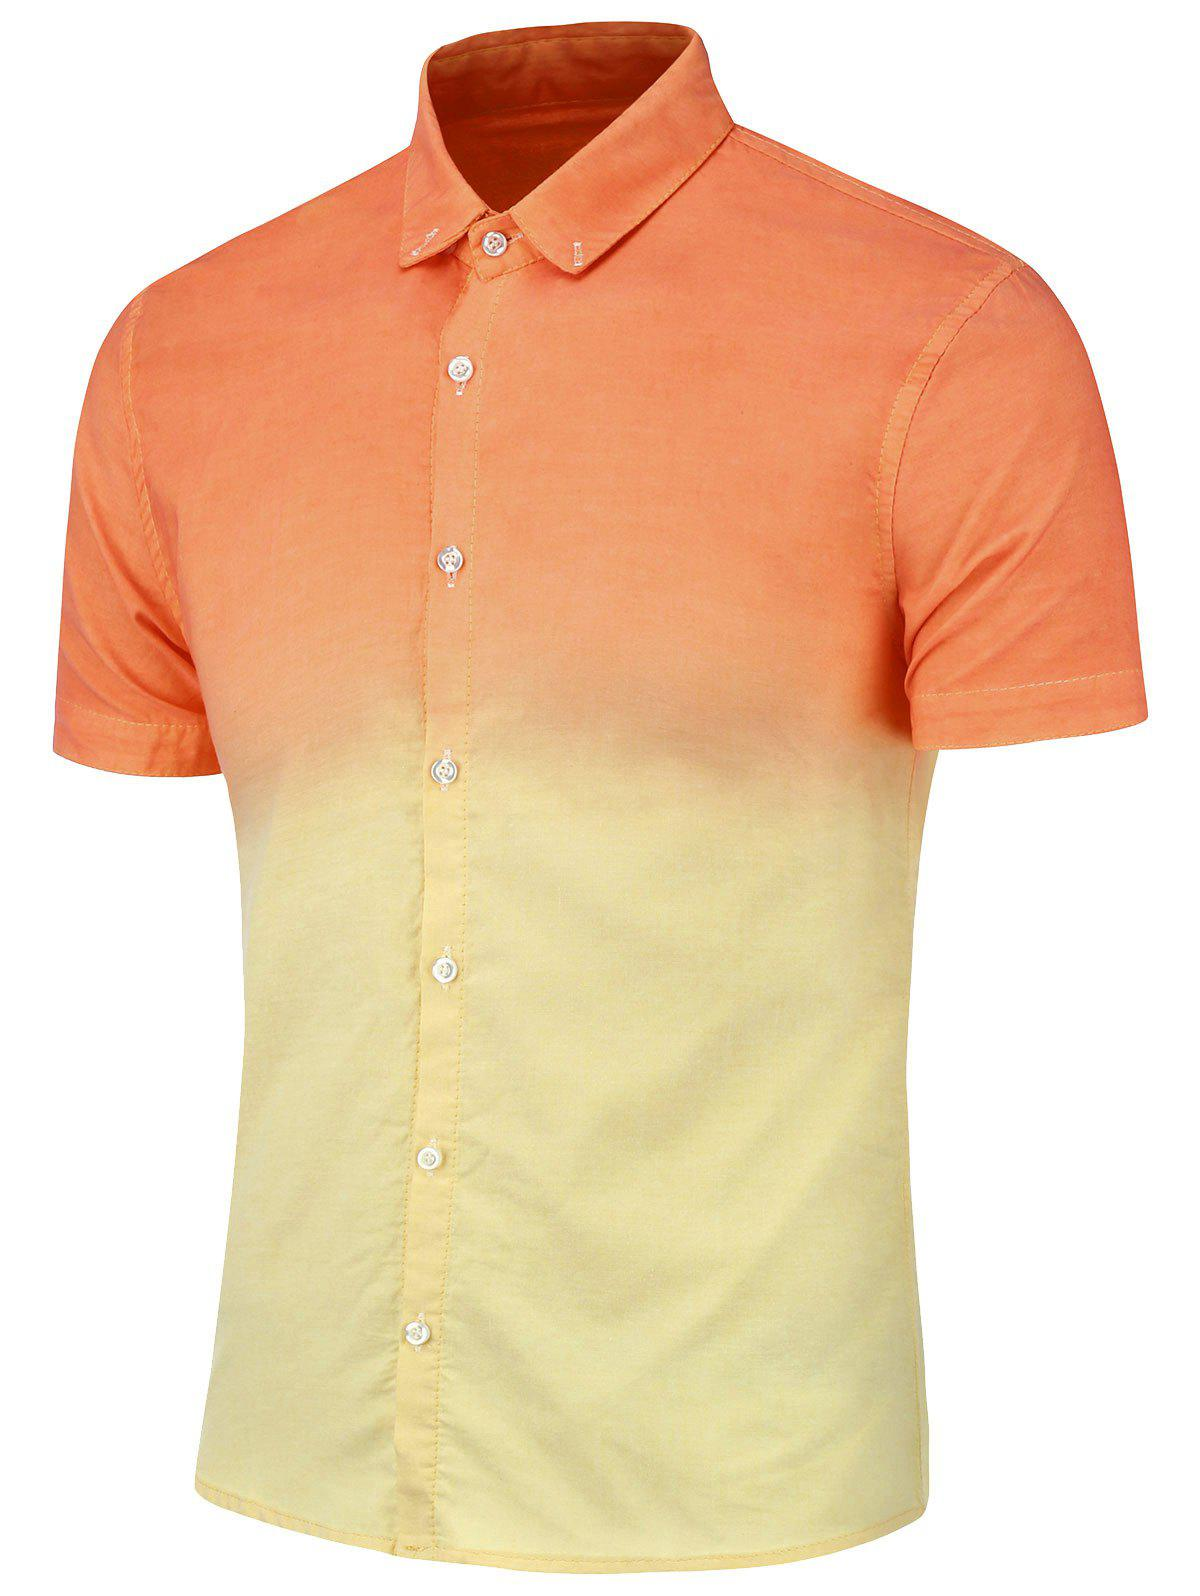 Dip Dye Button Down Short Sleeve Shirt - ORANGE YELLOW 2XL